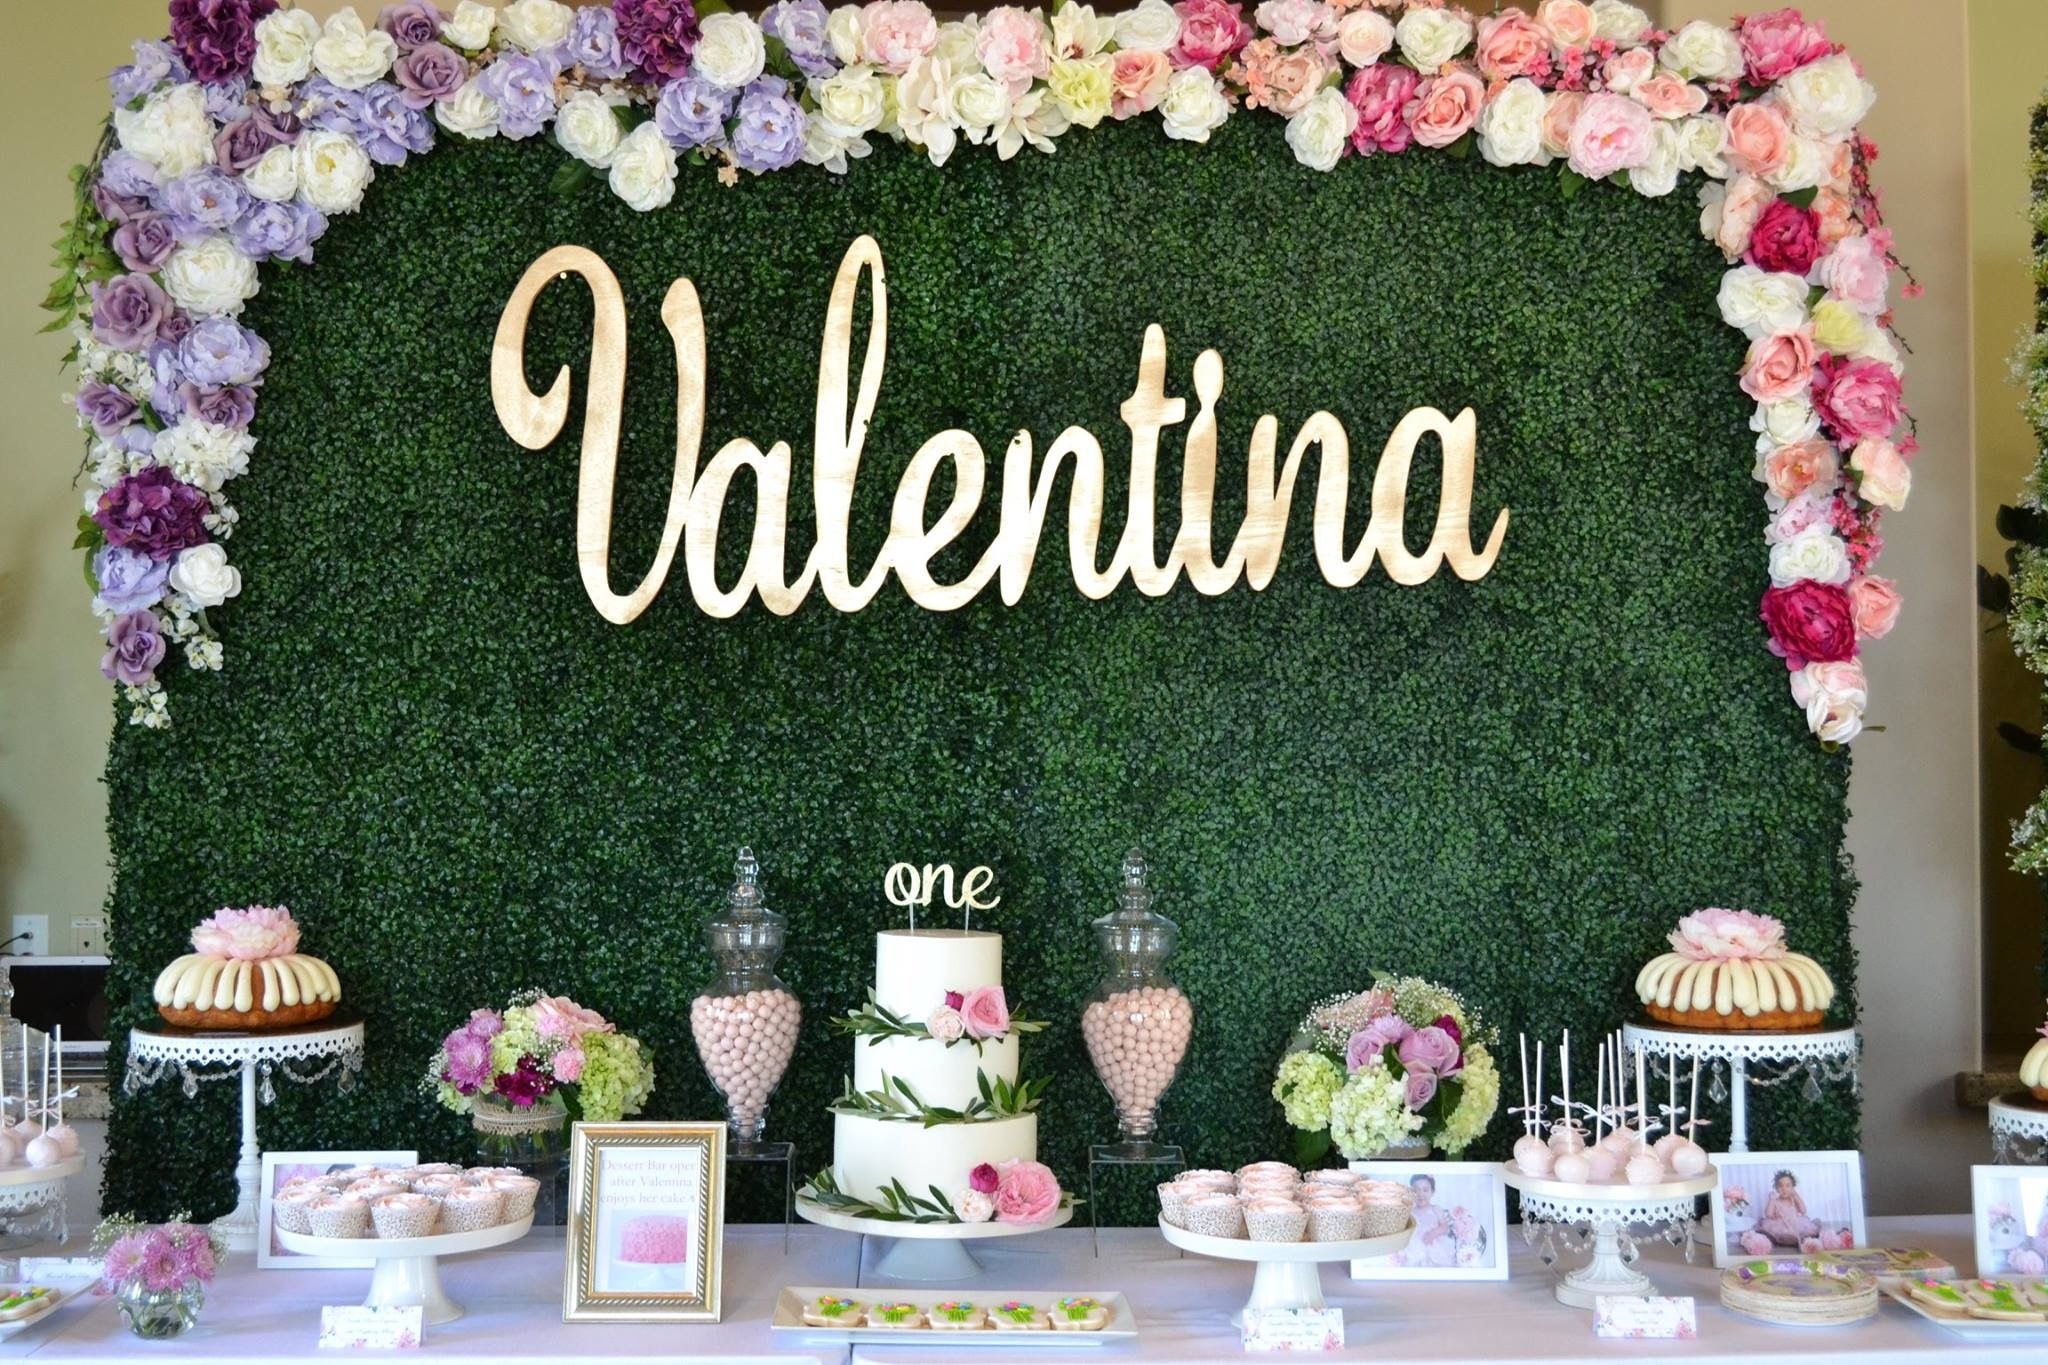 Garden theme party with hedge wall and florals | Garden party ...